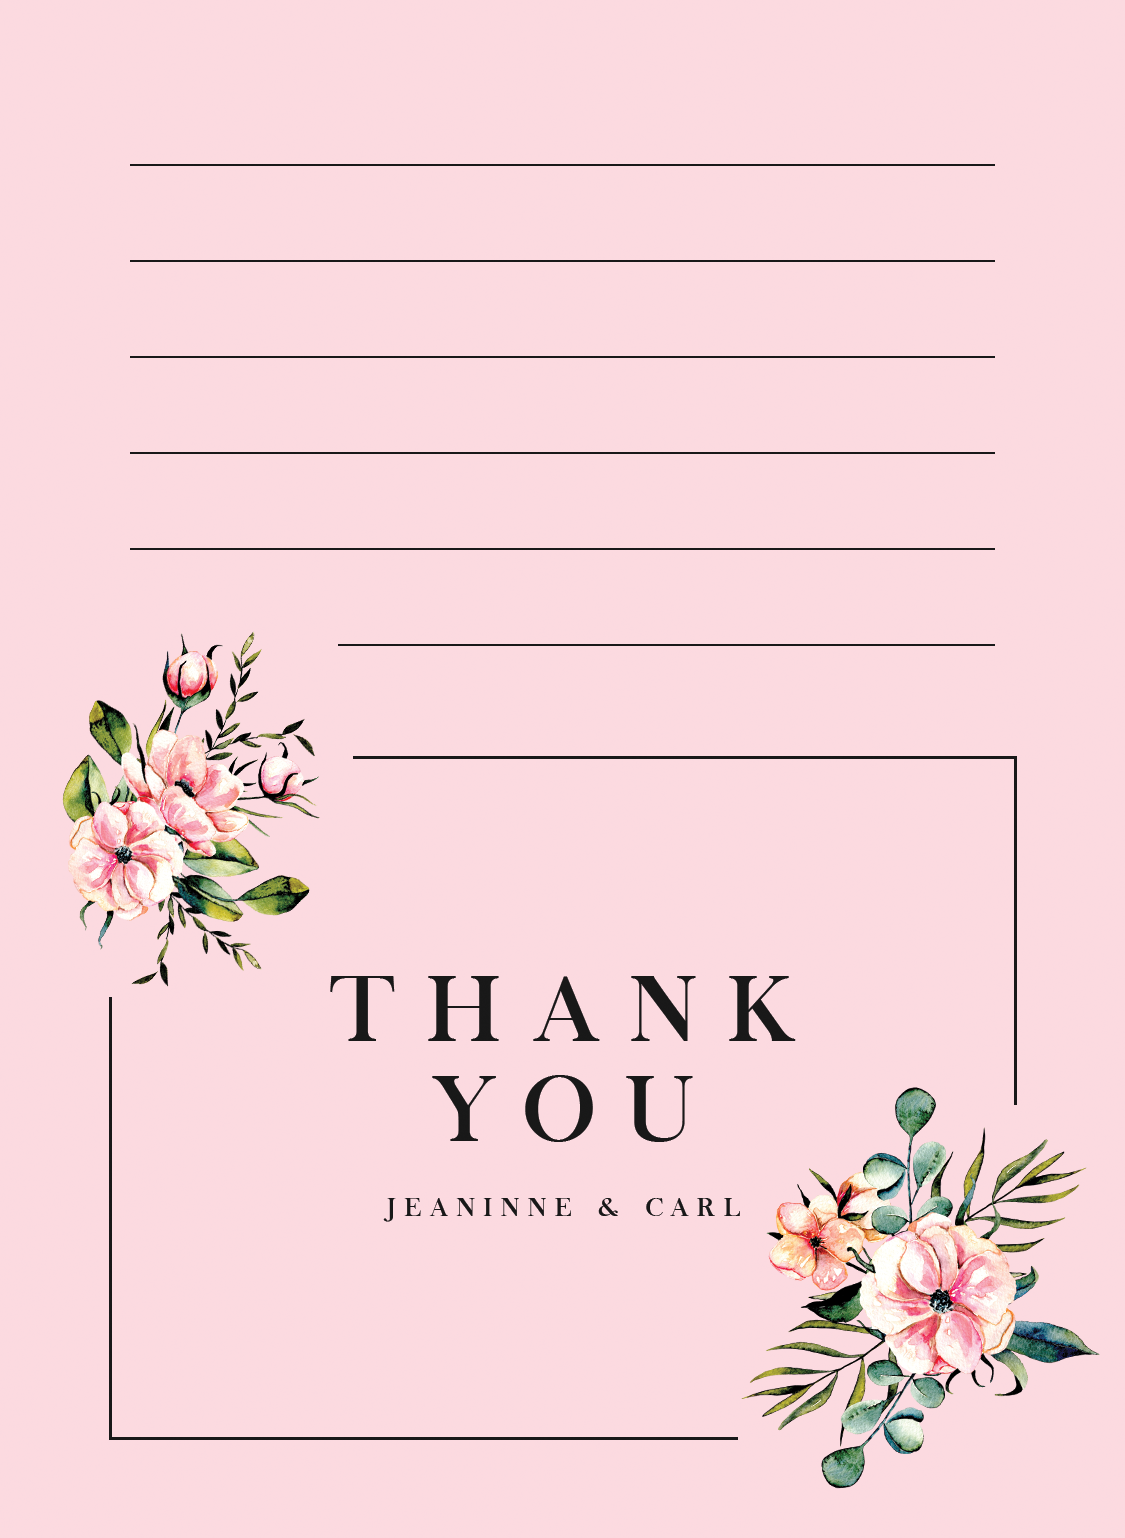 Thank You - US A1 CARD SIZE - COLOR 2_RGB.png